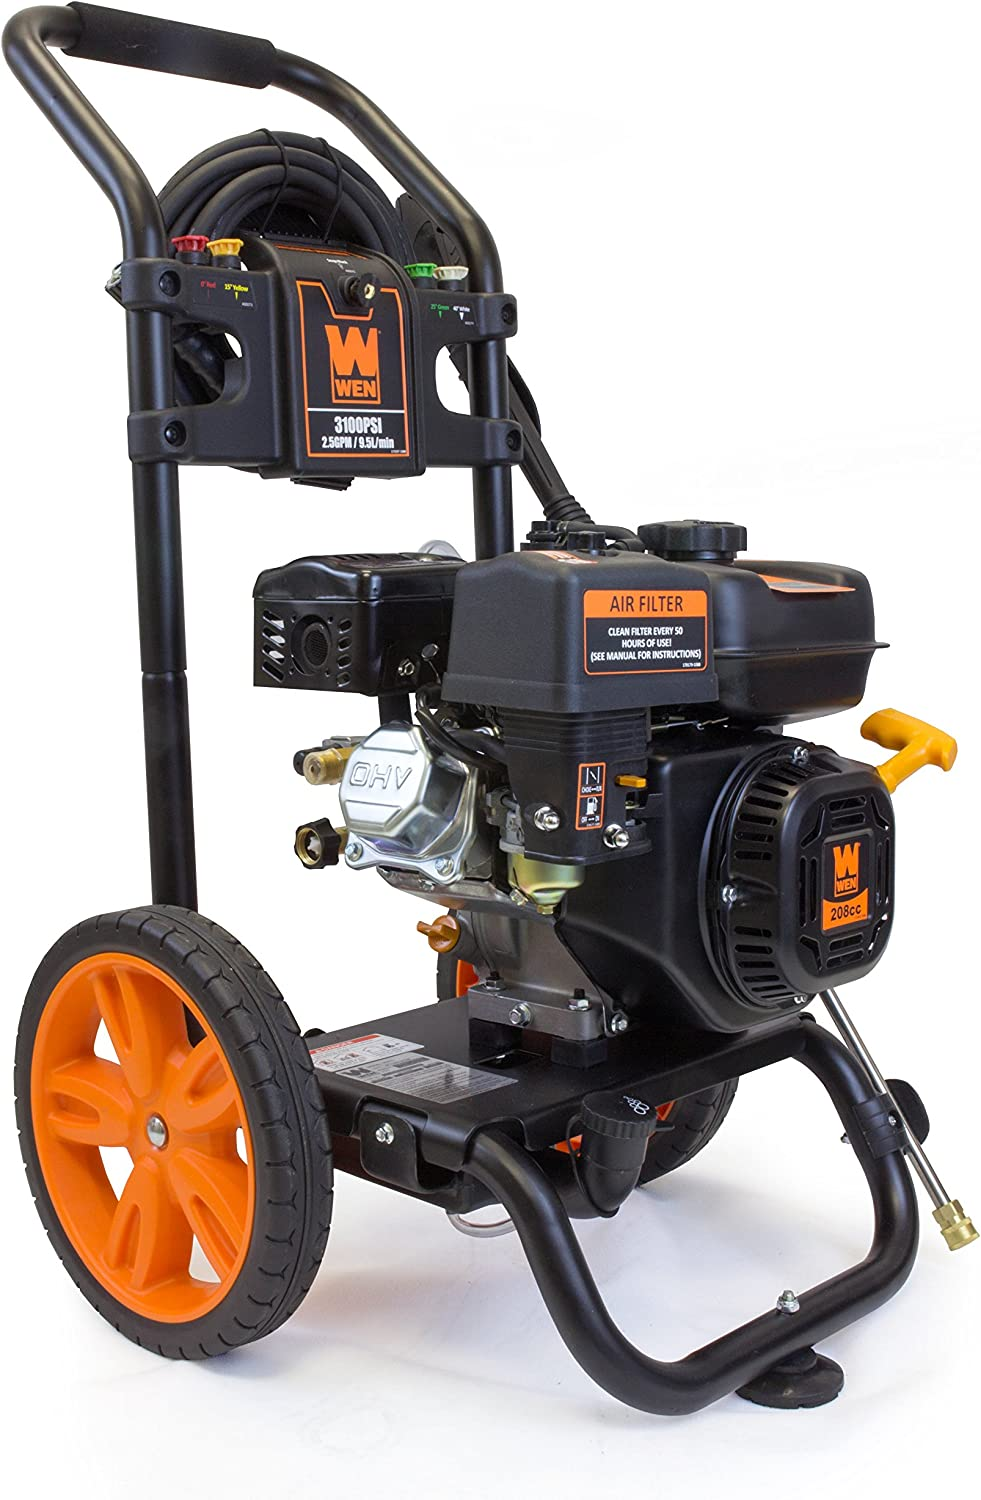 wen pw3100 3100 gas pressure washer